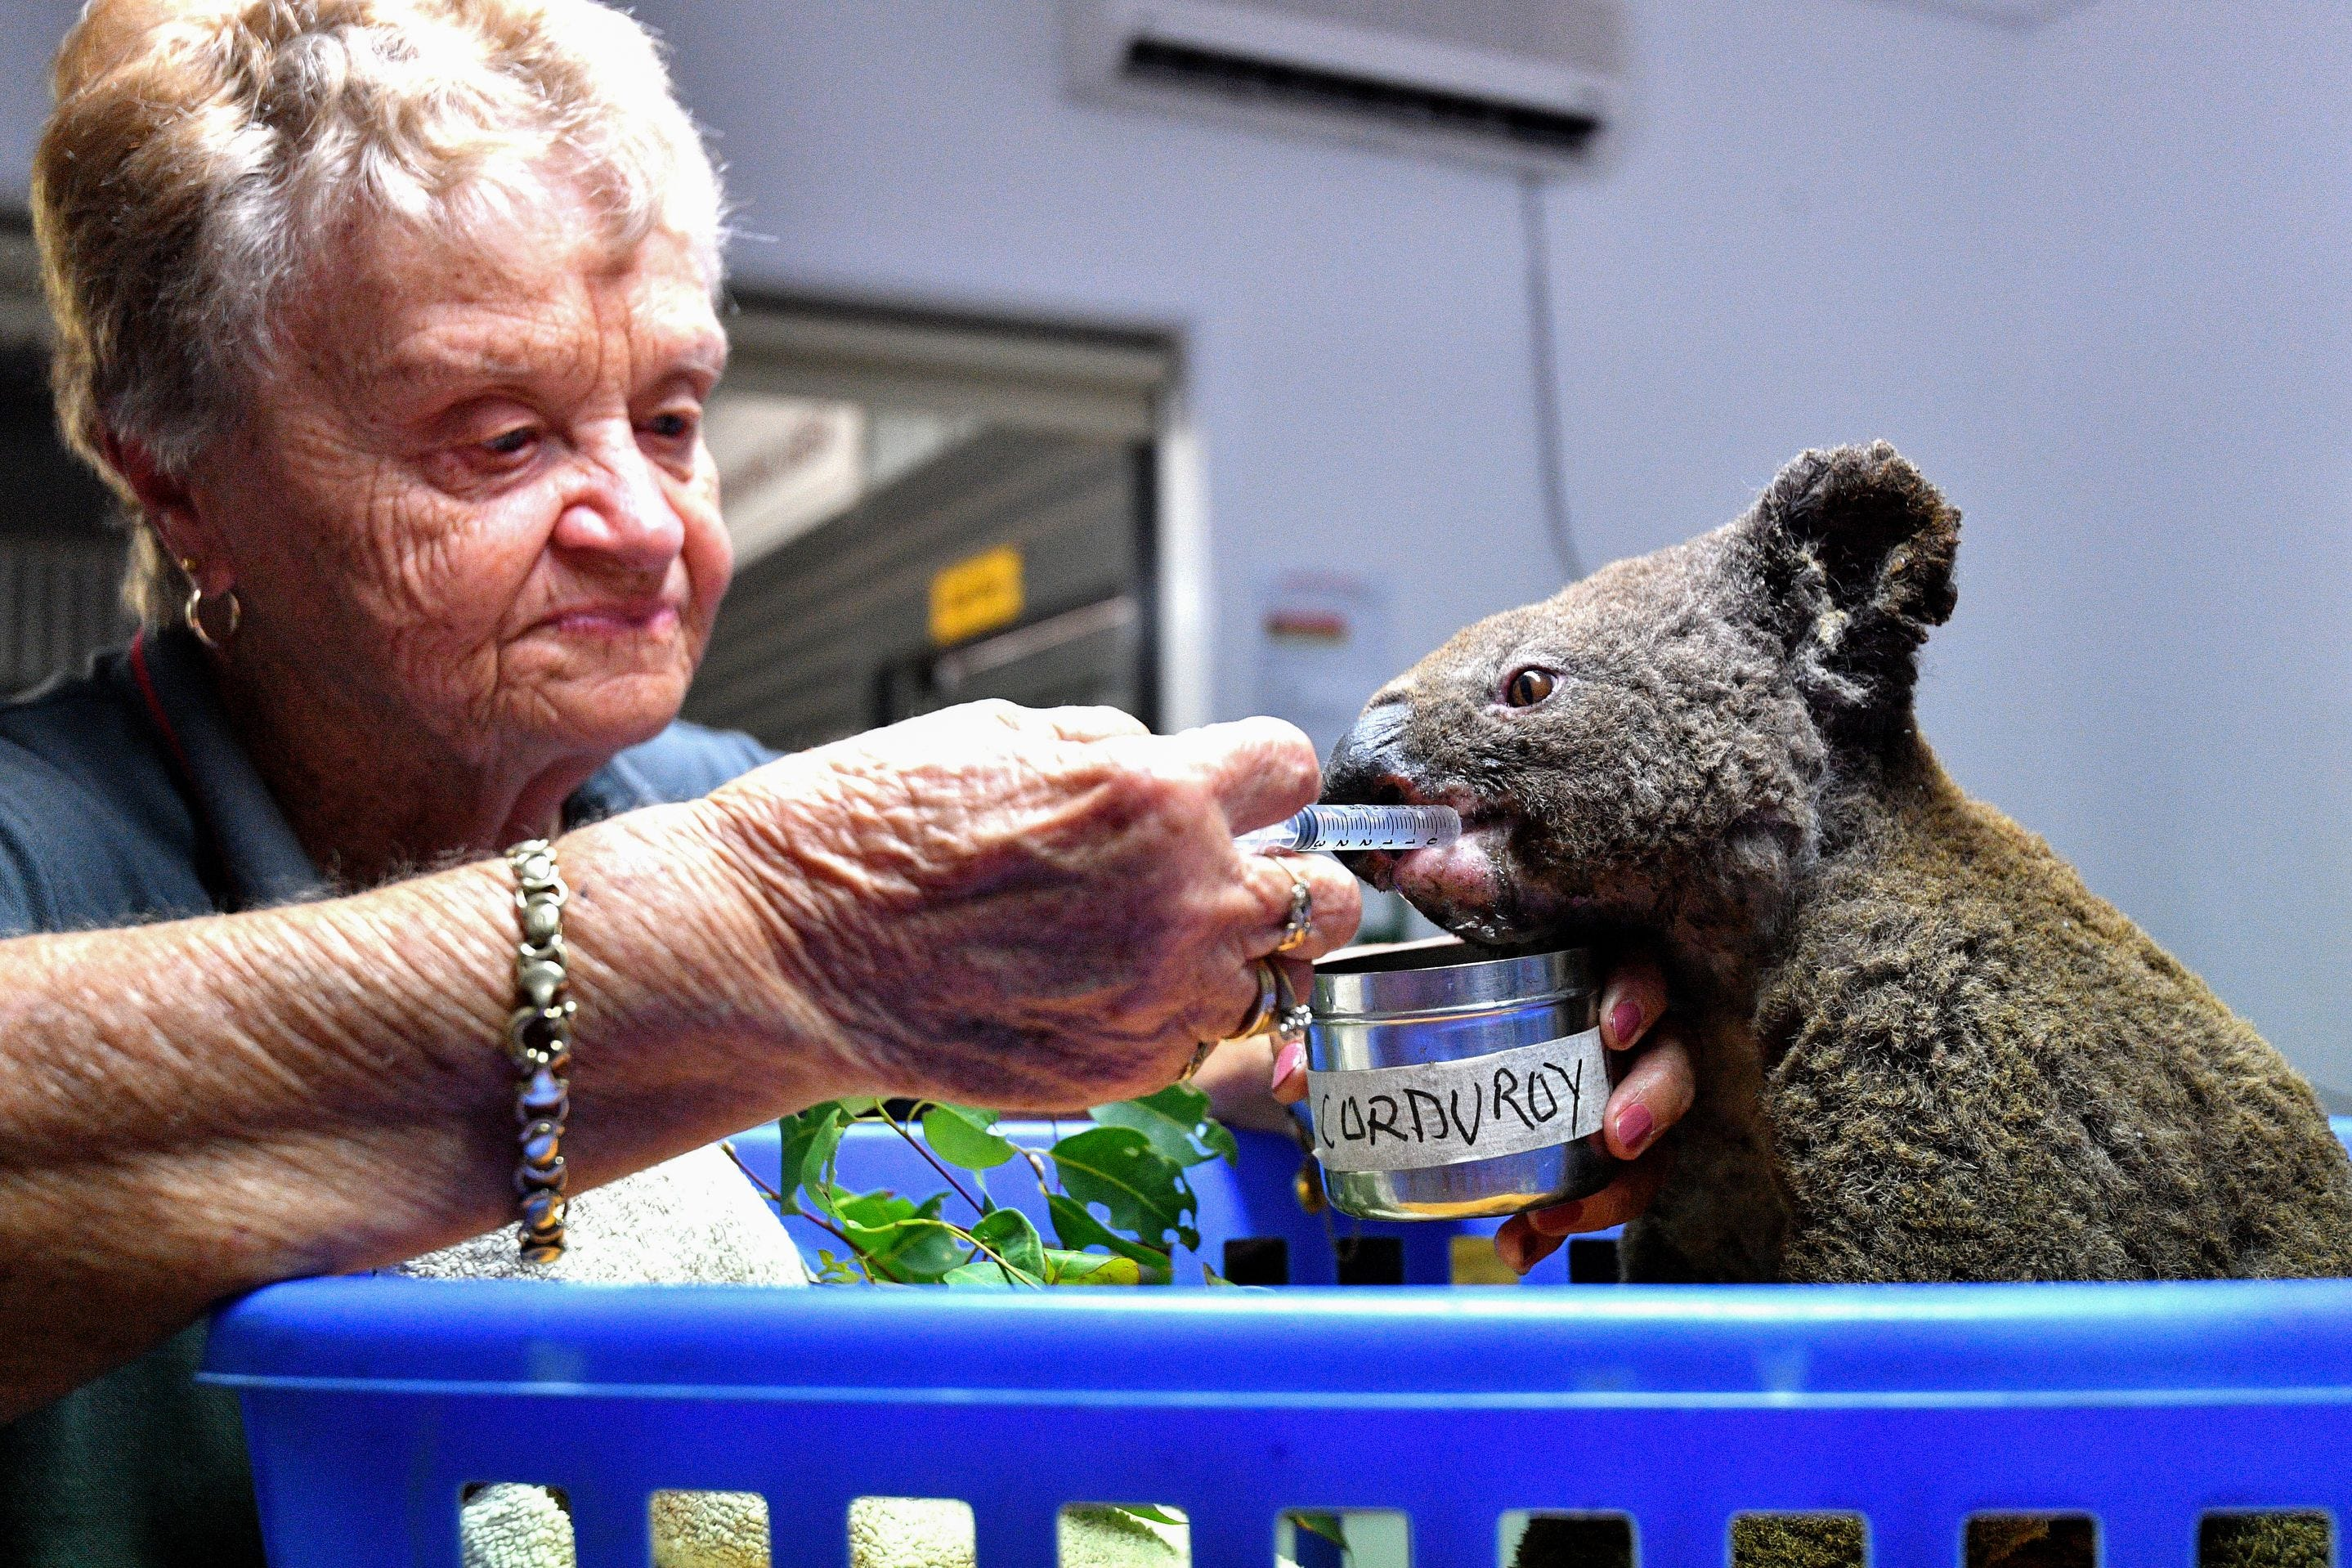 Koala dubbed Ellenborough Lewis clings to life 4 days after viral video of daring rescue